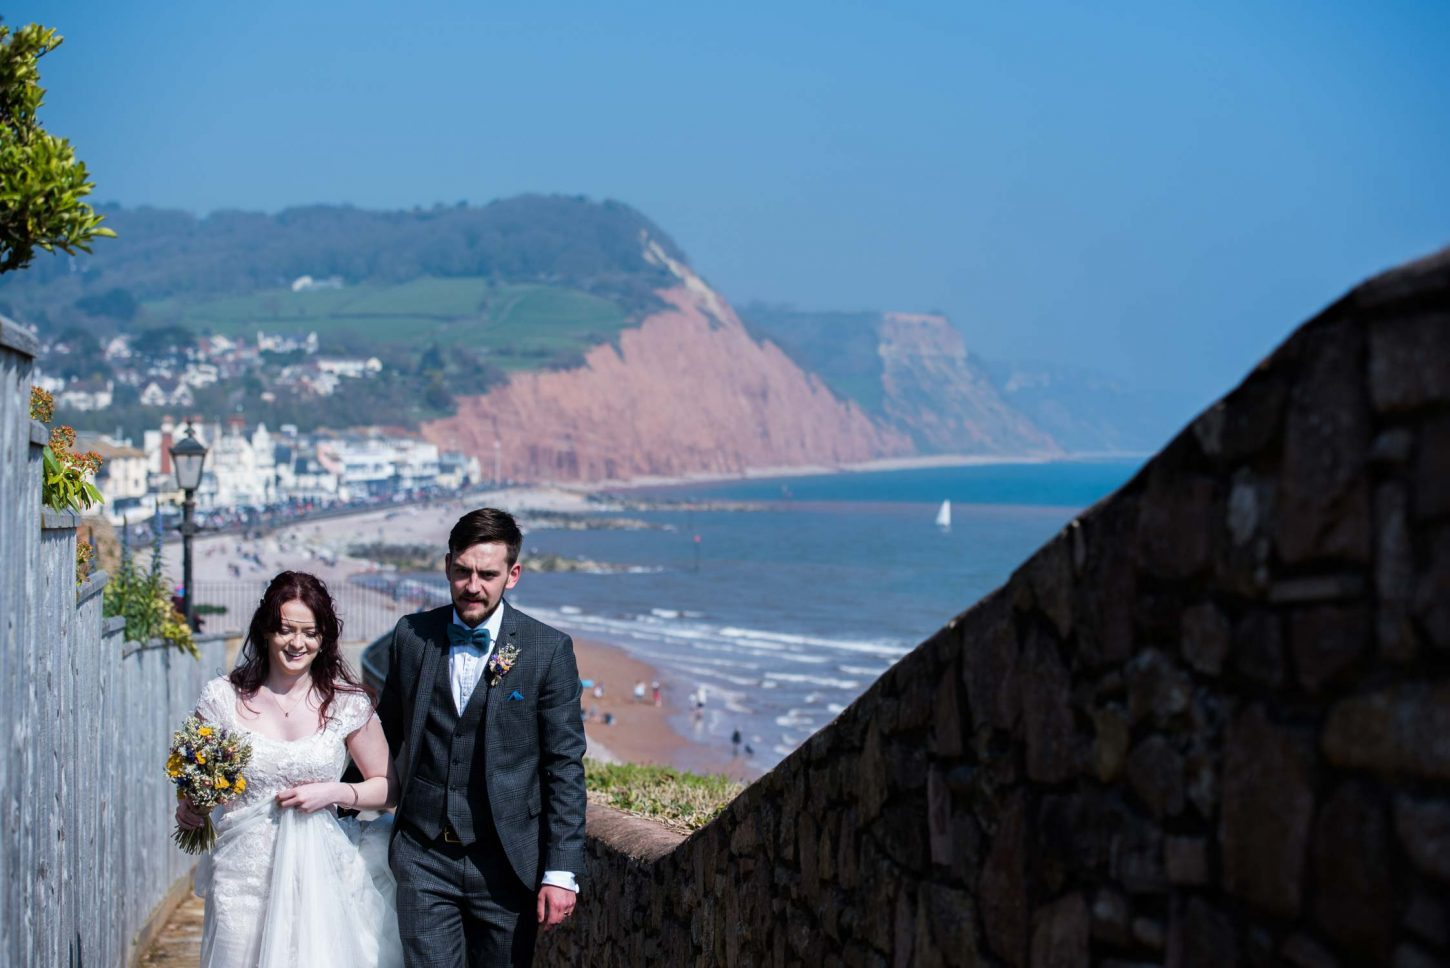 Bride and groom overlooking Sidmouth coast-line seafront coast, Sidmouth harbour hotel wedding photographer